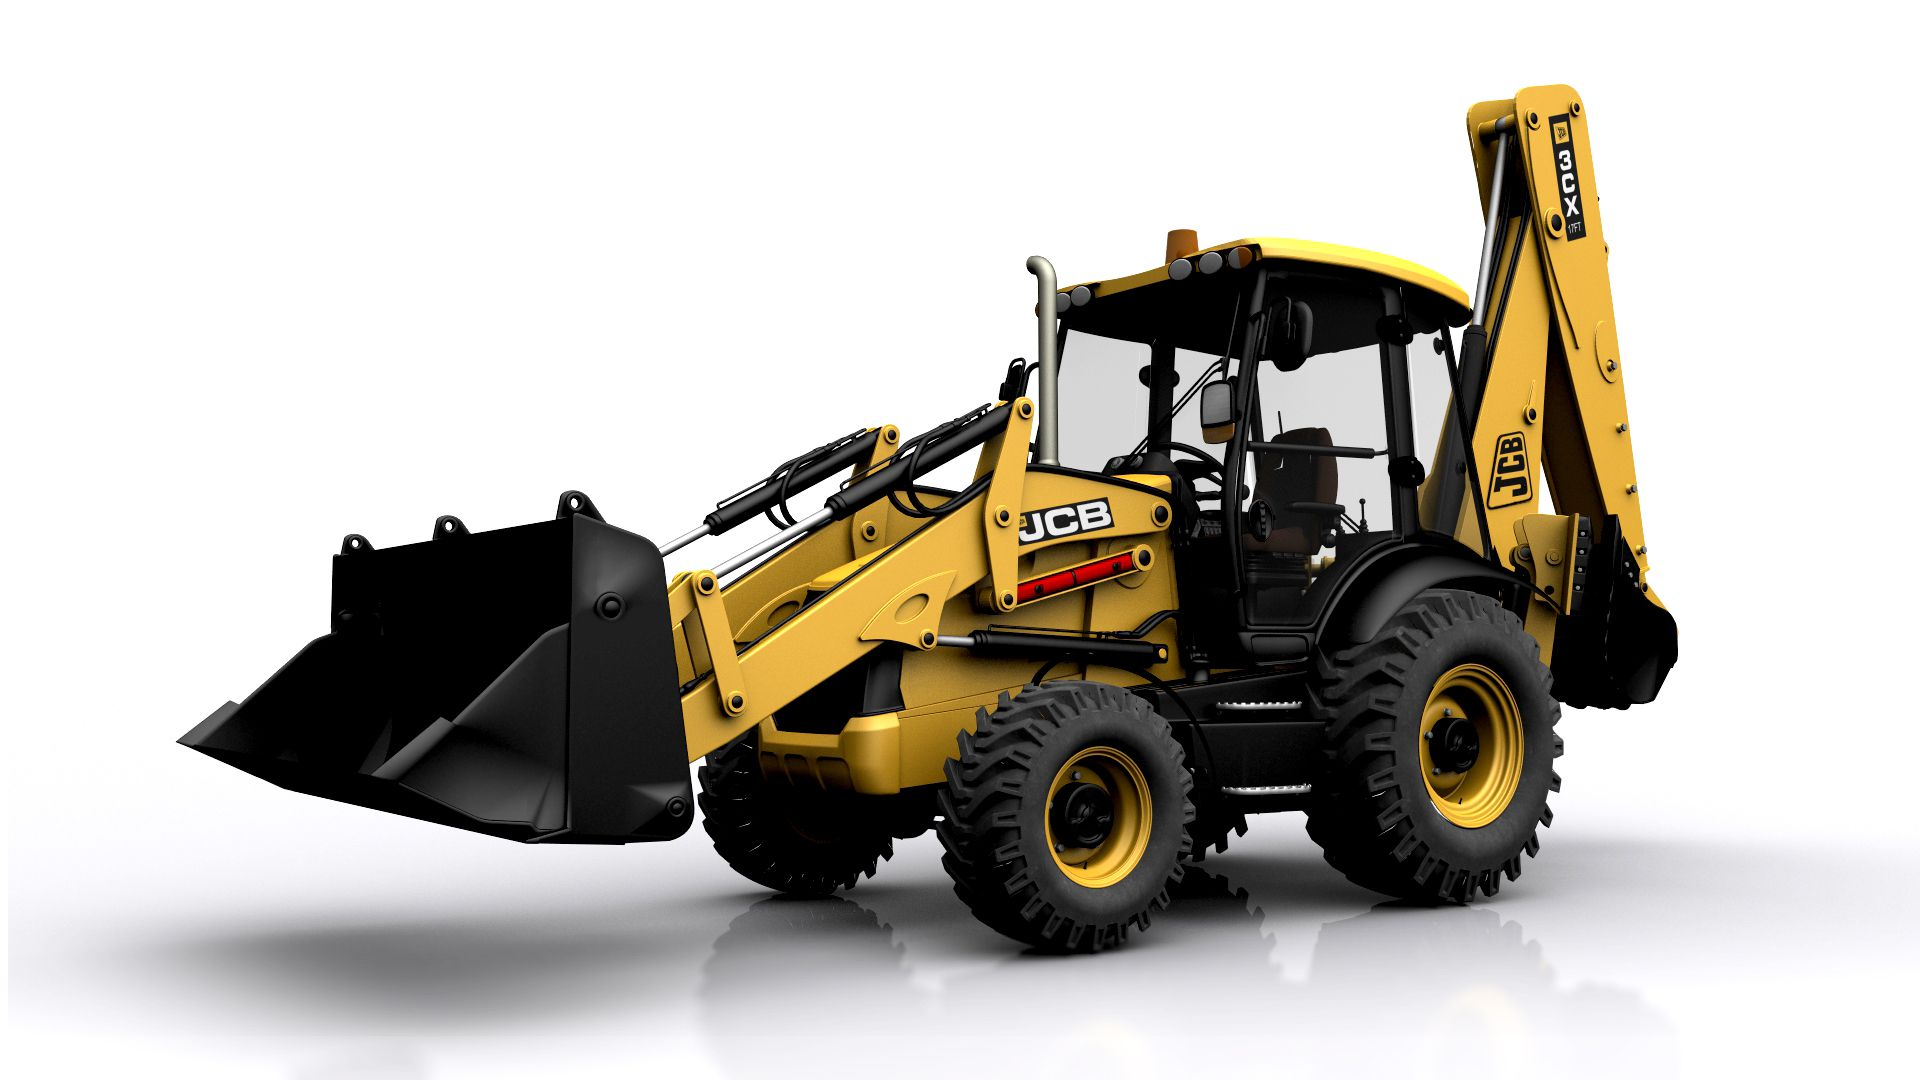 Jcb 3cx Backhoe Loader Model Is Not Mine Textured By Me Po Wiring Diagram